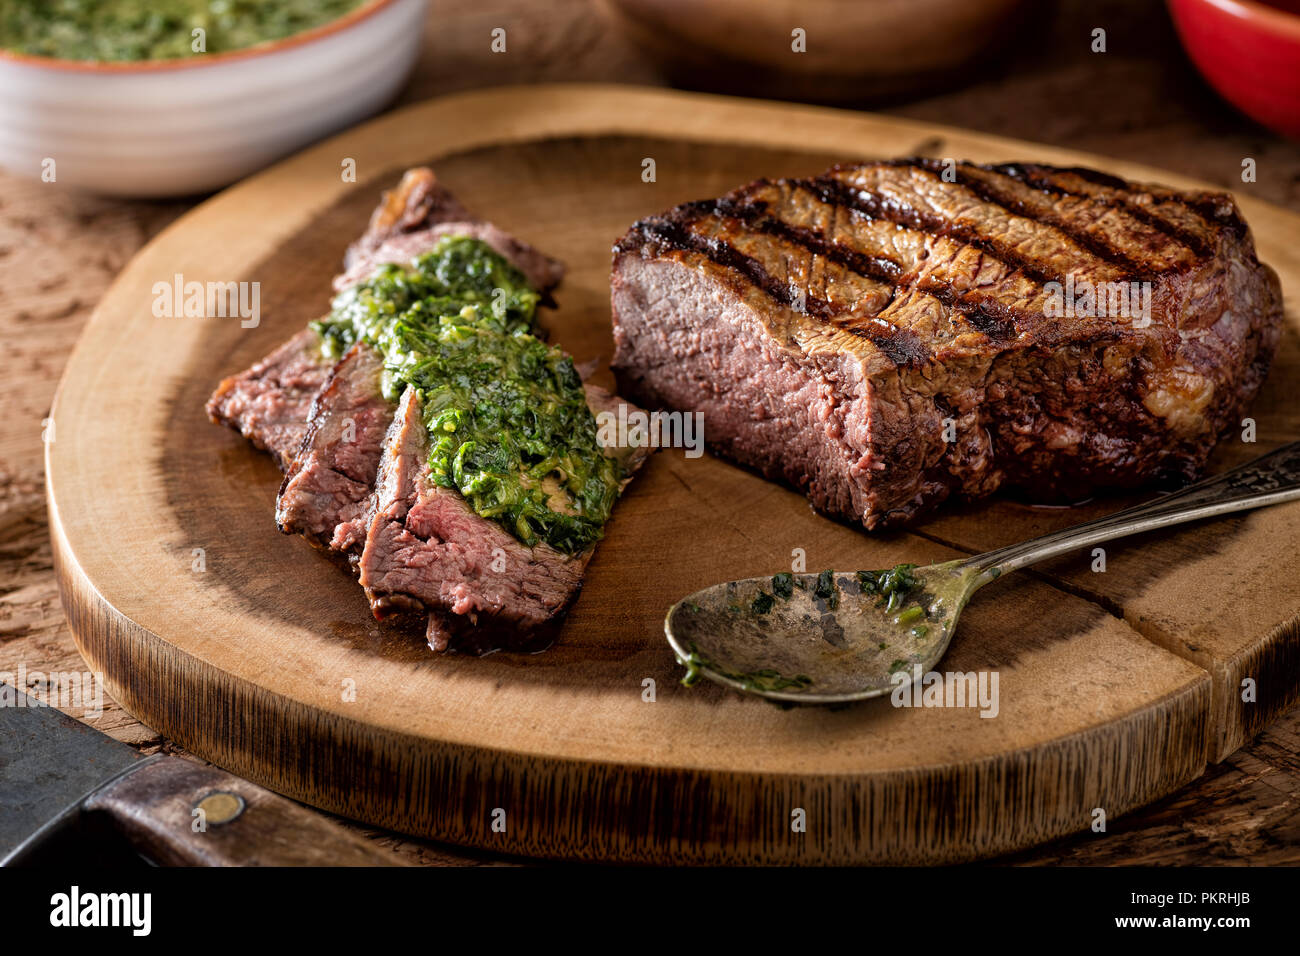 A delicious medium rare fire grilled argentina style steak with chimichurri verde sauce. Stock Photo